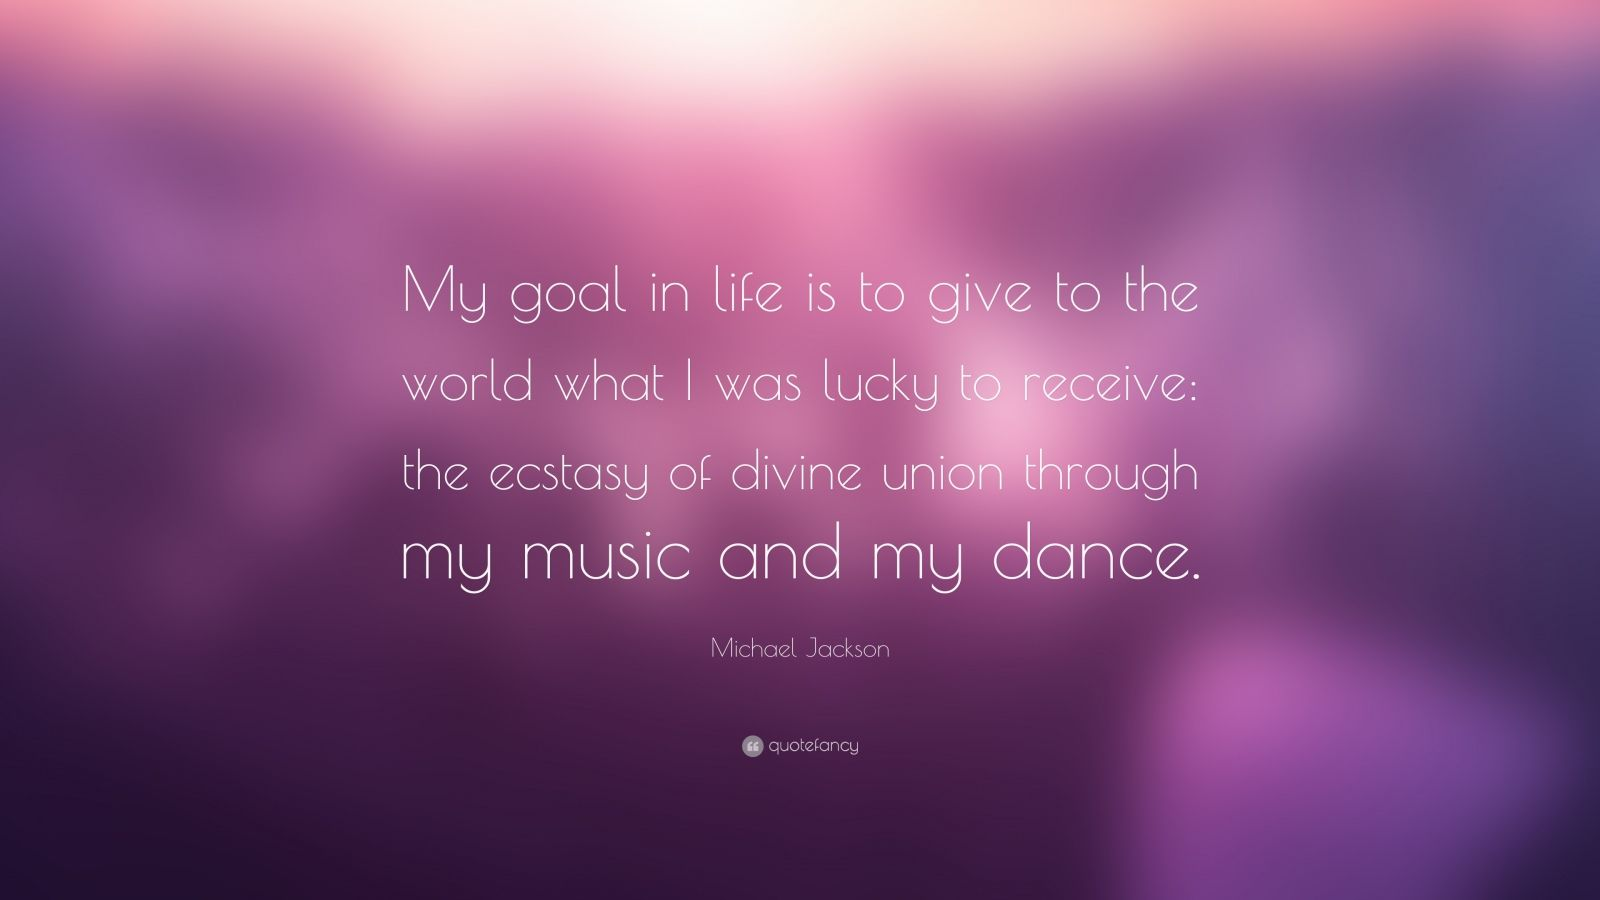 Beautiful Quotes And Inspirational Wallpapers Facebook Dance Quotes 40 Wallpapers Quotefancy